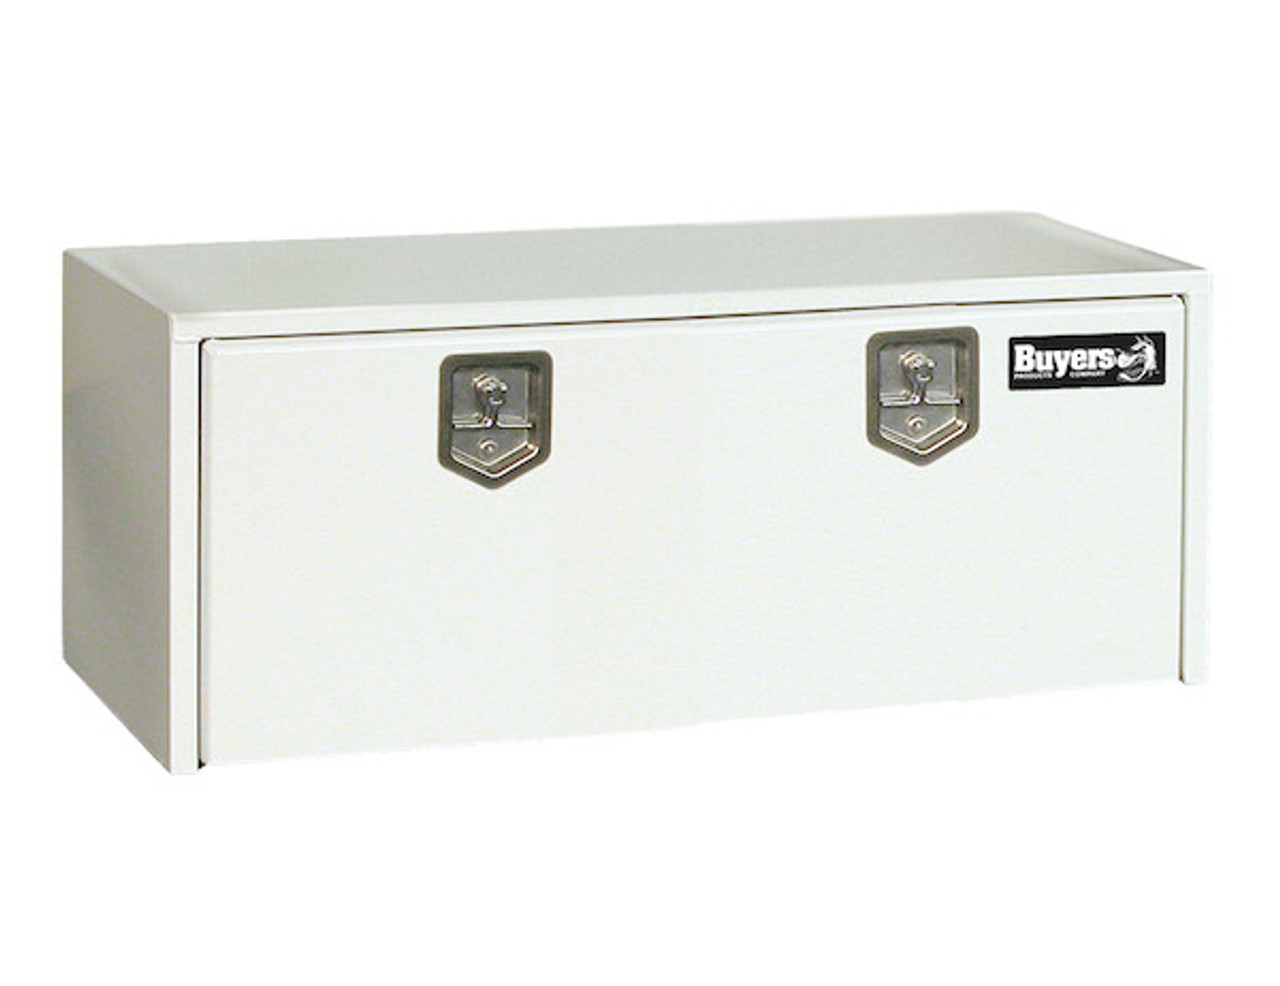 """1704415 BUYERS PRODUCTS WHITE STEEL UNDERBODY TRUCK TOOLBOX 24""""HX24""""DX60""""W"""